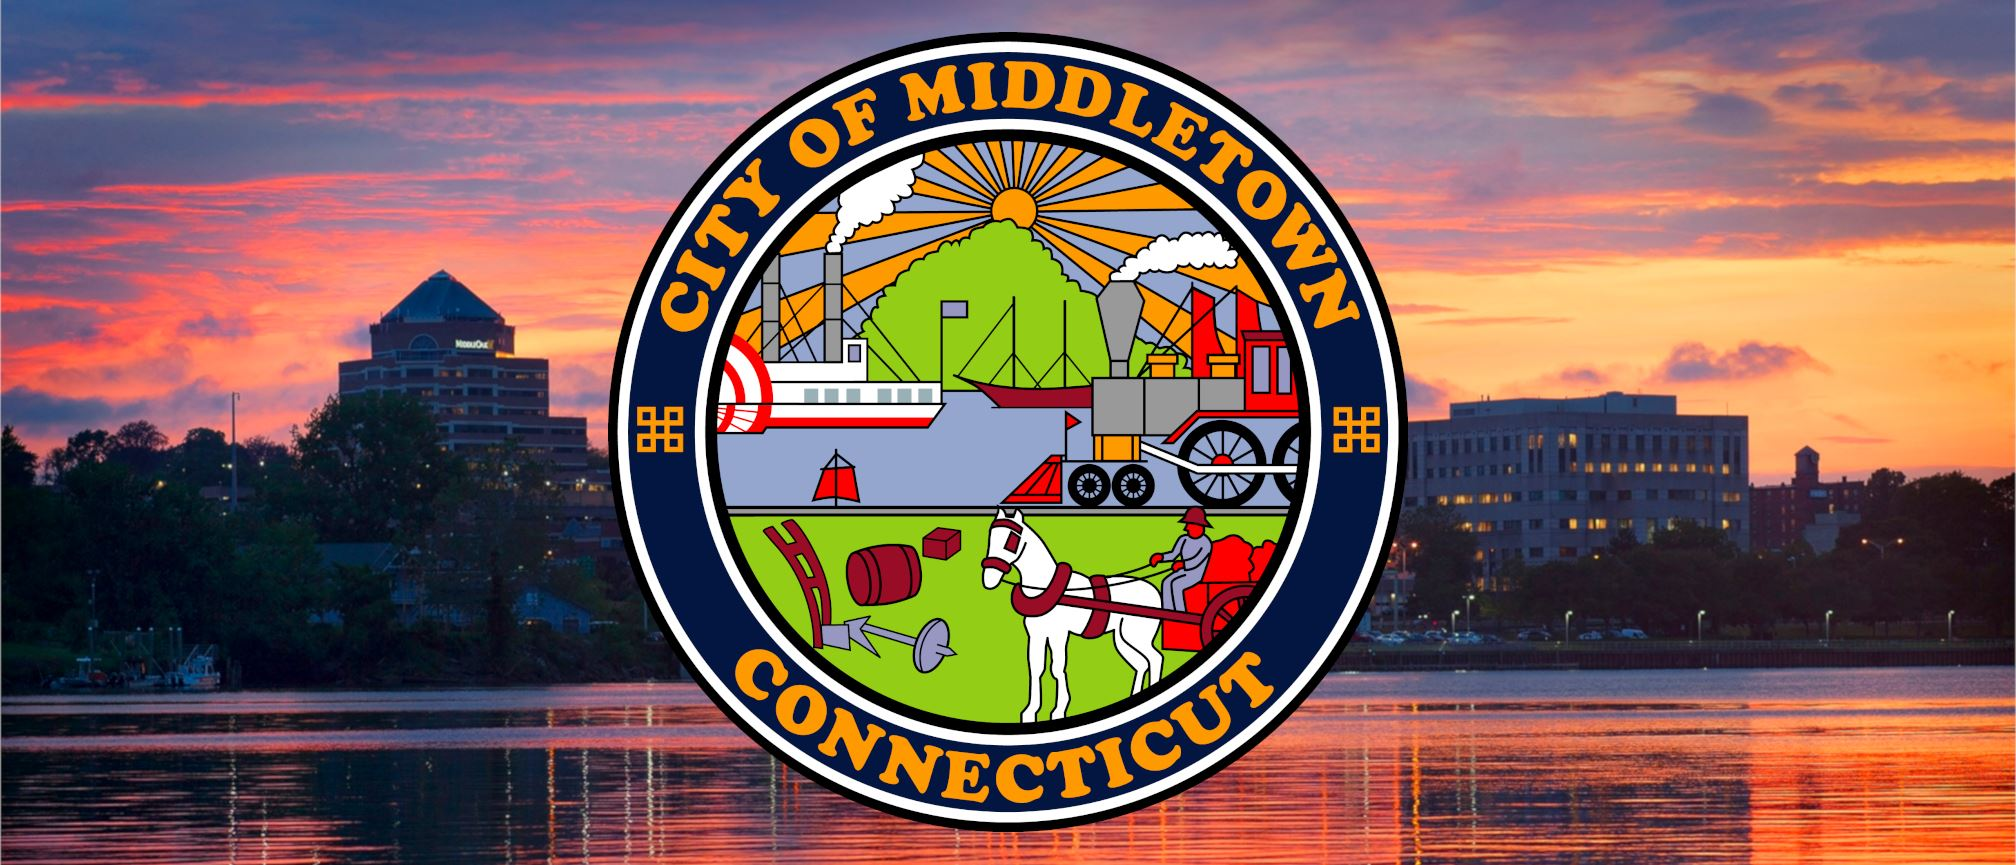 The City of Middletown's Official Seal over a dusk skyline of the City.